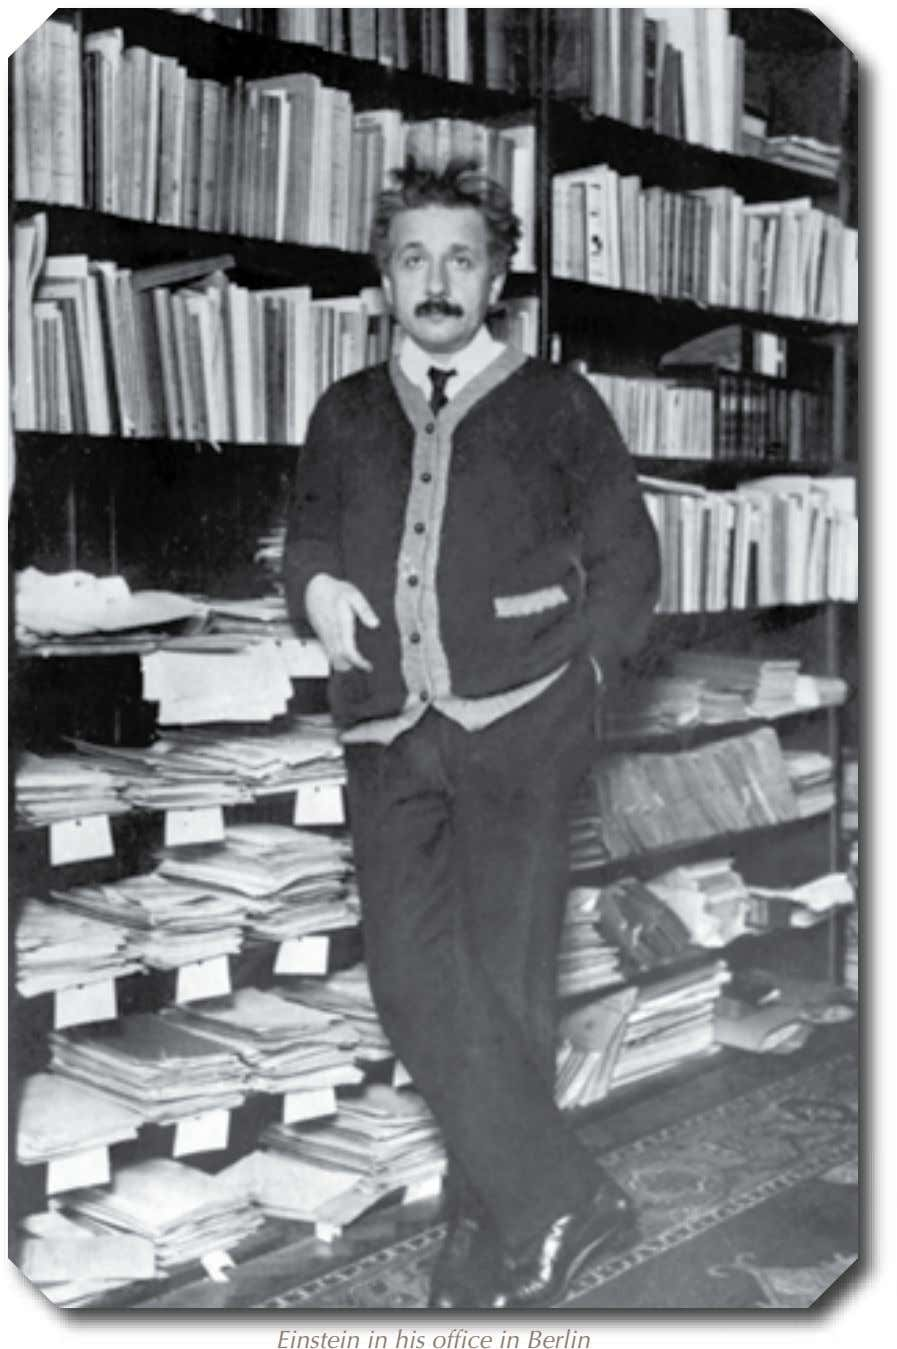 Einstein in his office in Berlin